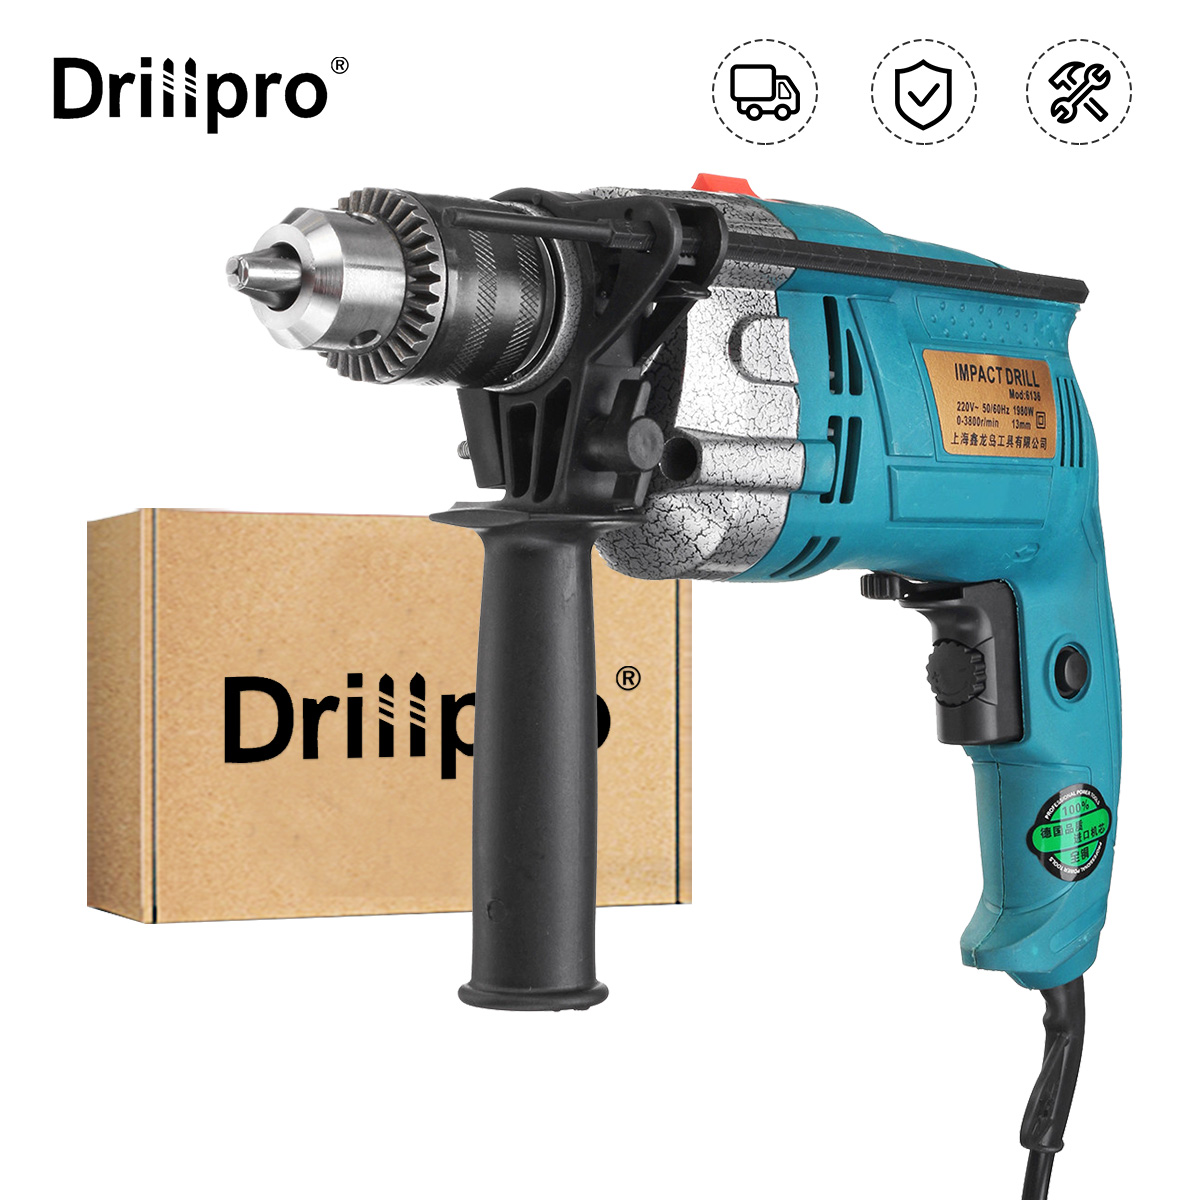 Drillpro 1980W 3800rpm 220V Electric Impact Drill Kit Handheld Flat Drill Rotary Hammer Multifunction   Scale Wrench Handle Bar